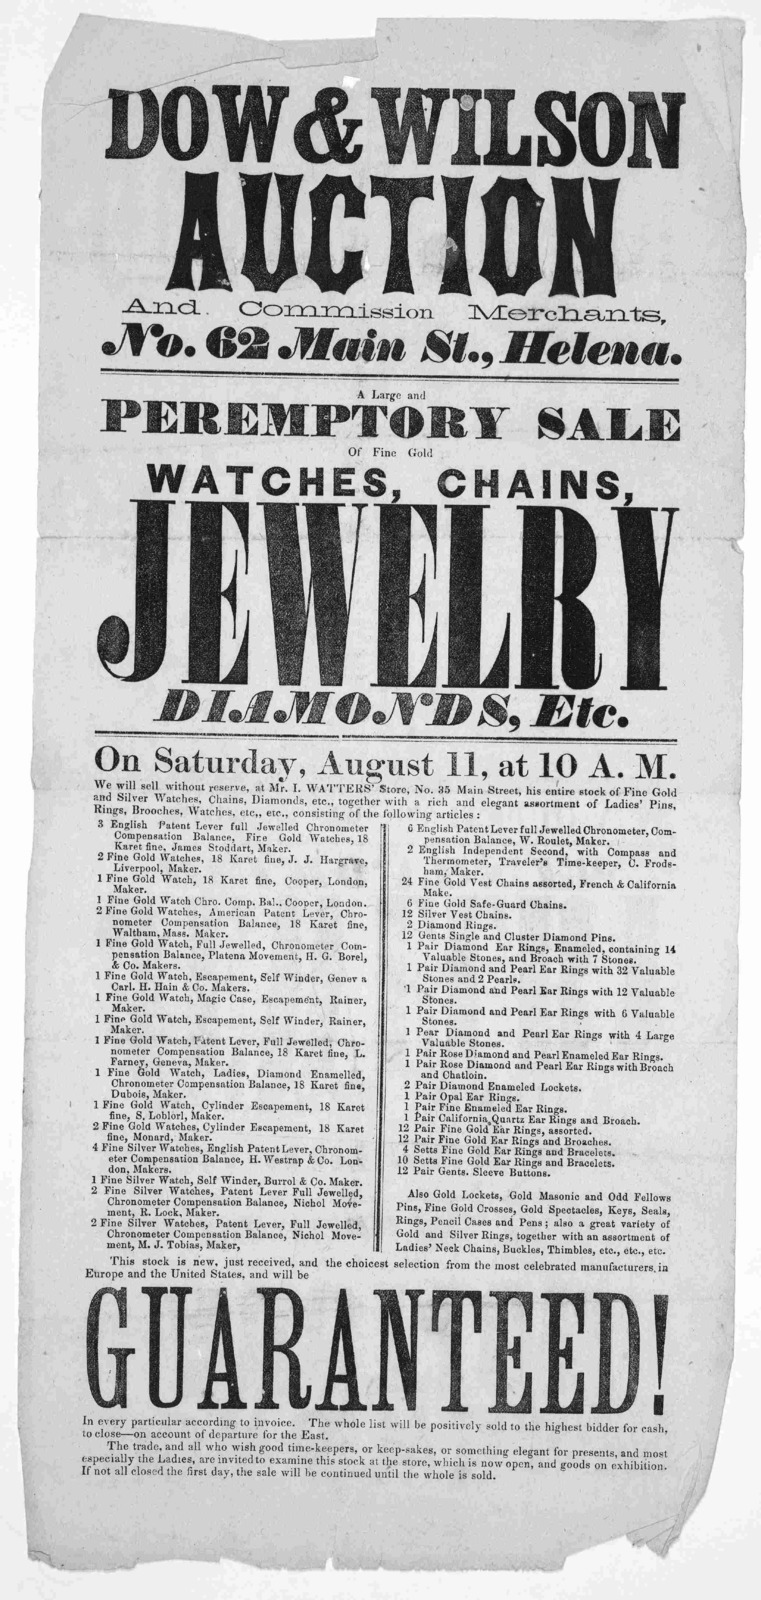 ... A large and peremptory sale of fine gold watches, chains, jewelry diamonds, etc, on Saturday, August 11, at 10 A. M. [Helena, Mont. 187-?].